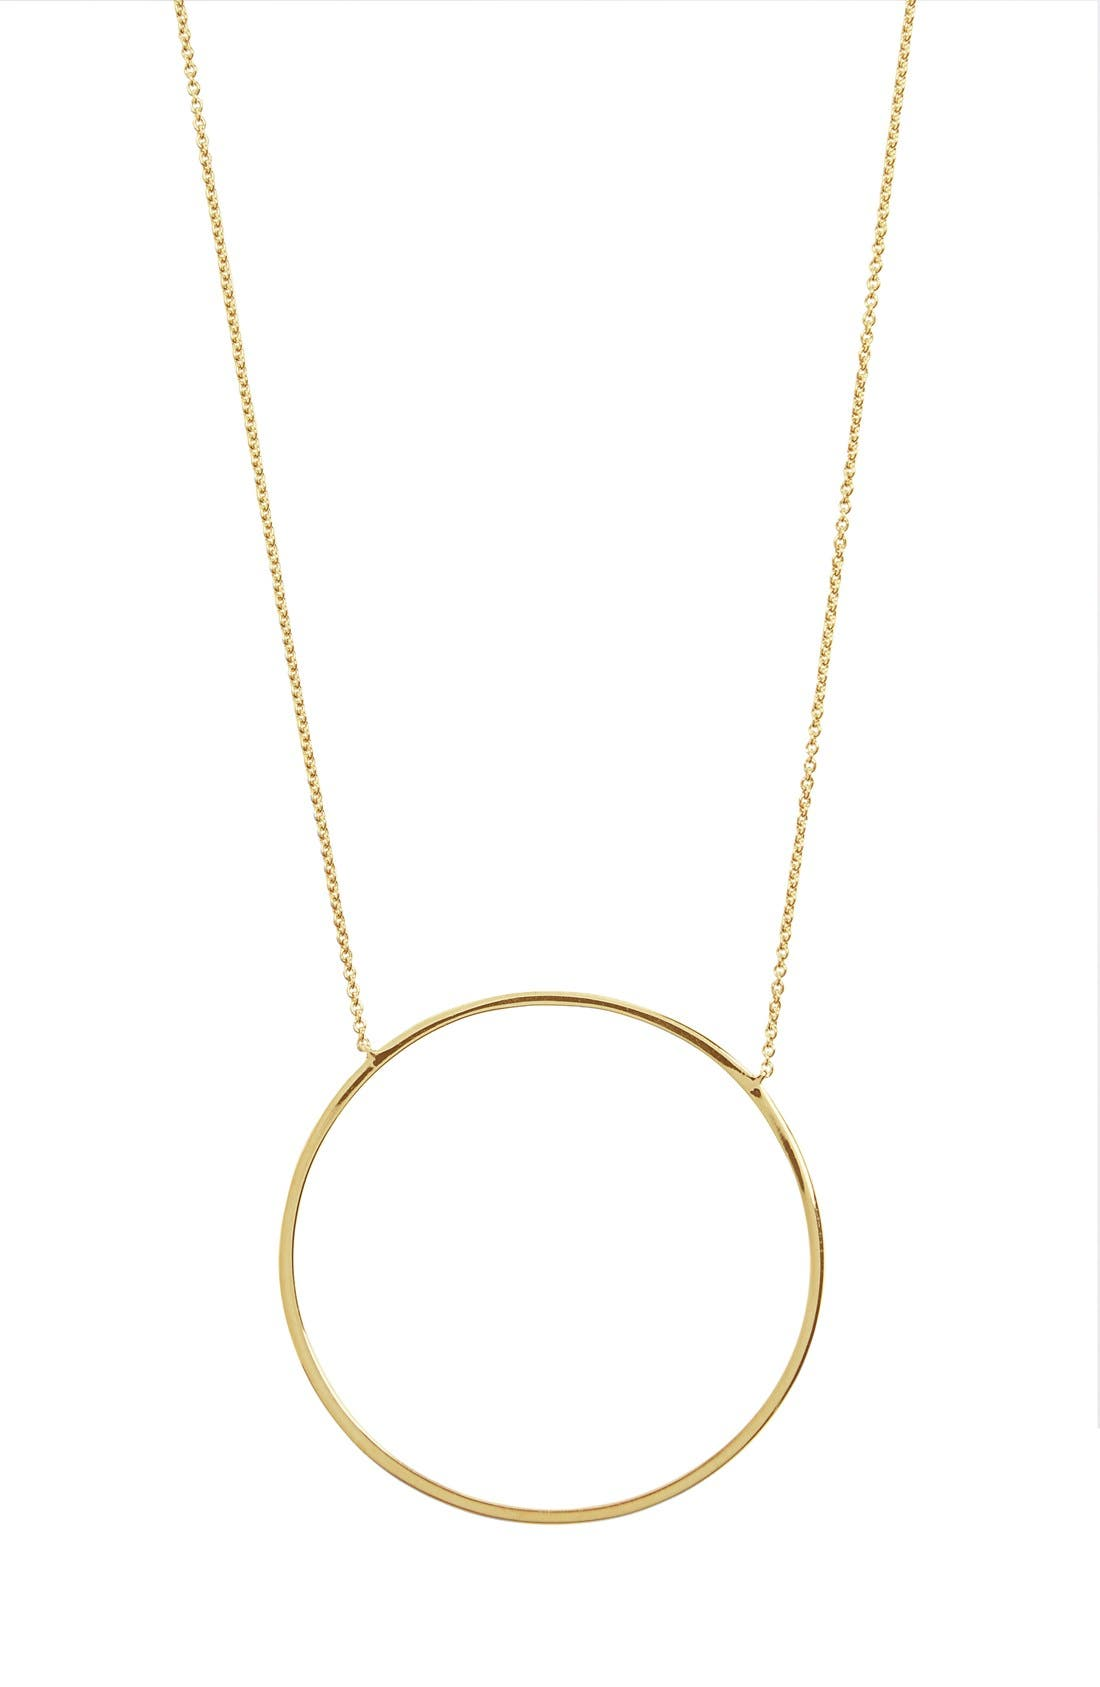 Pendant Necklace,                         Main,                         color, Yellow Gold